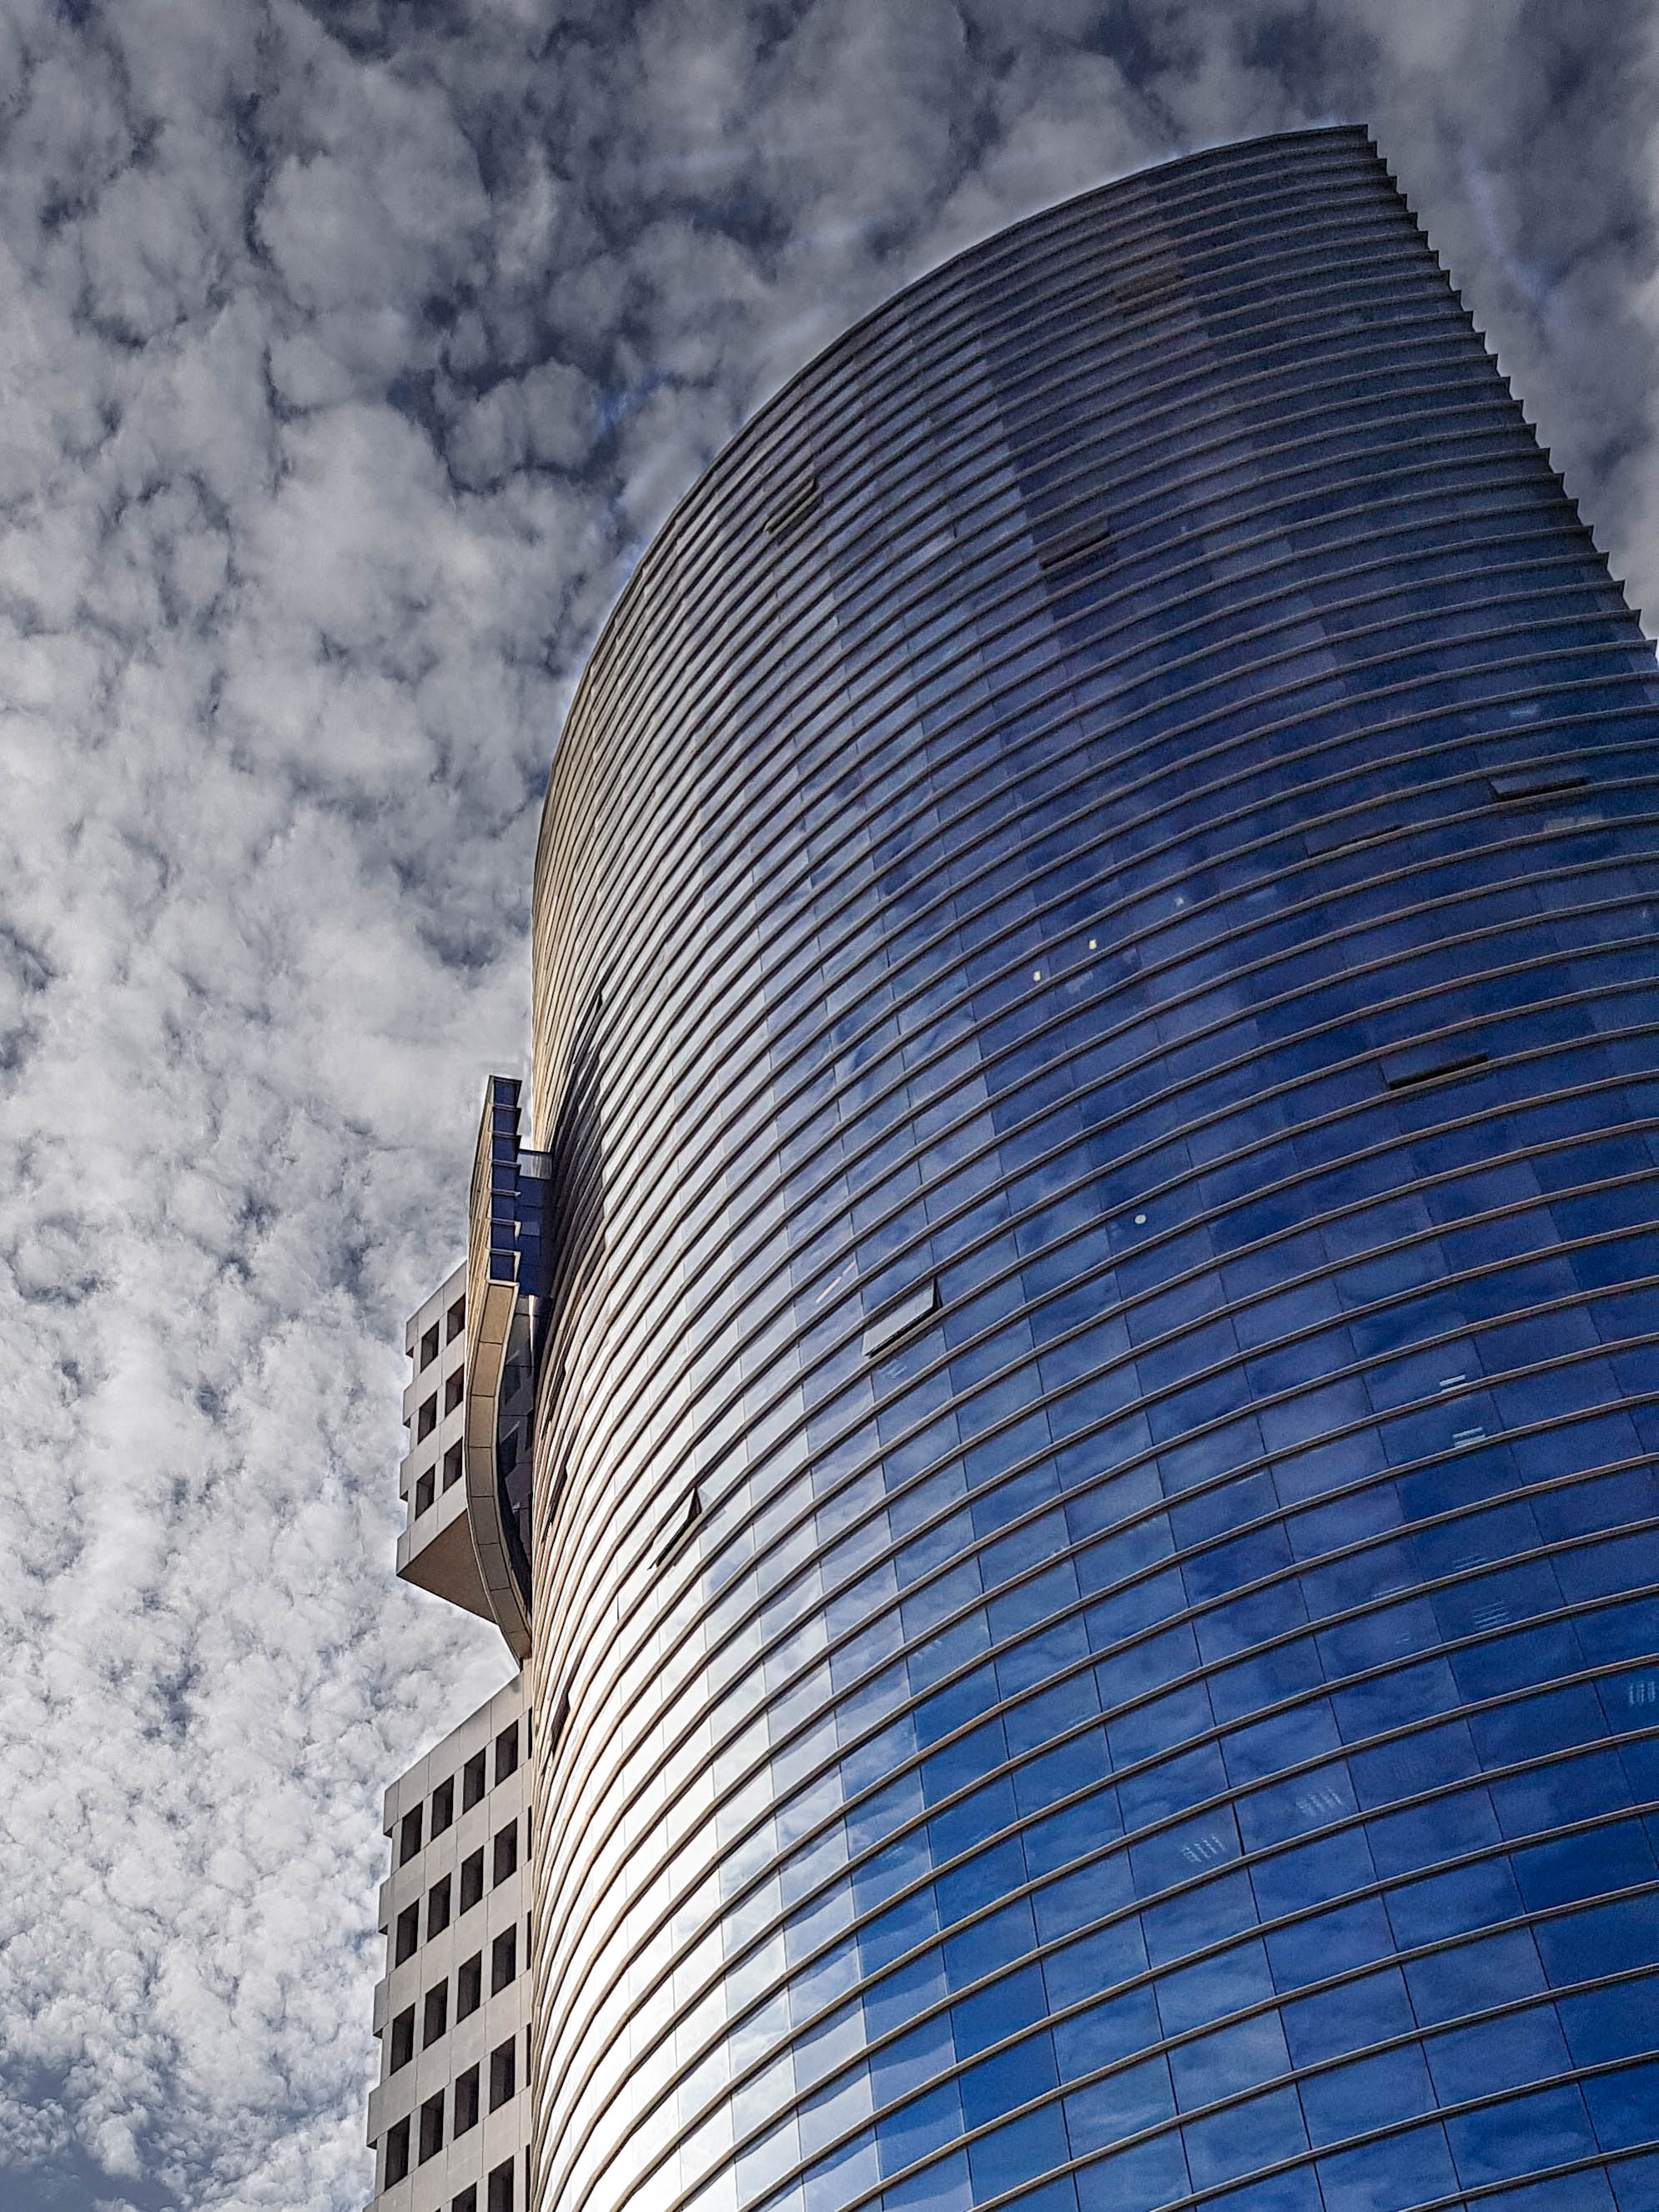 Our offices are located inside the Israeli Trade Tower in Tel Aviv.